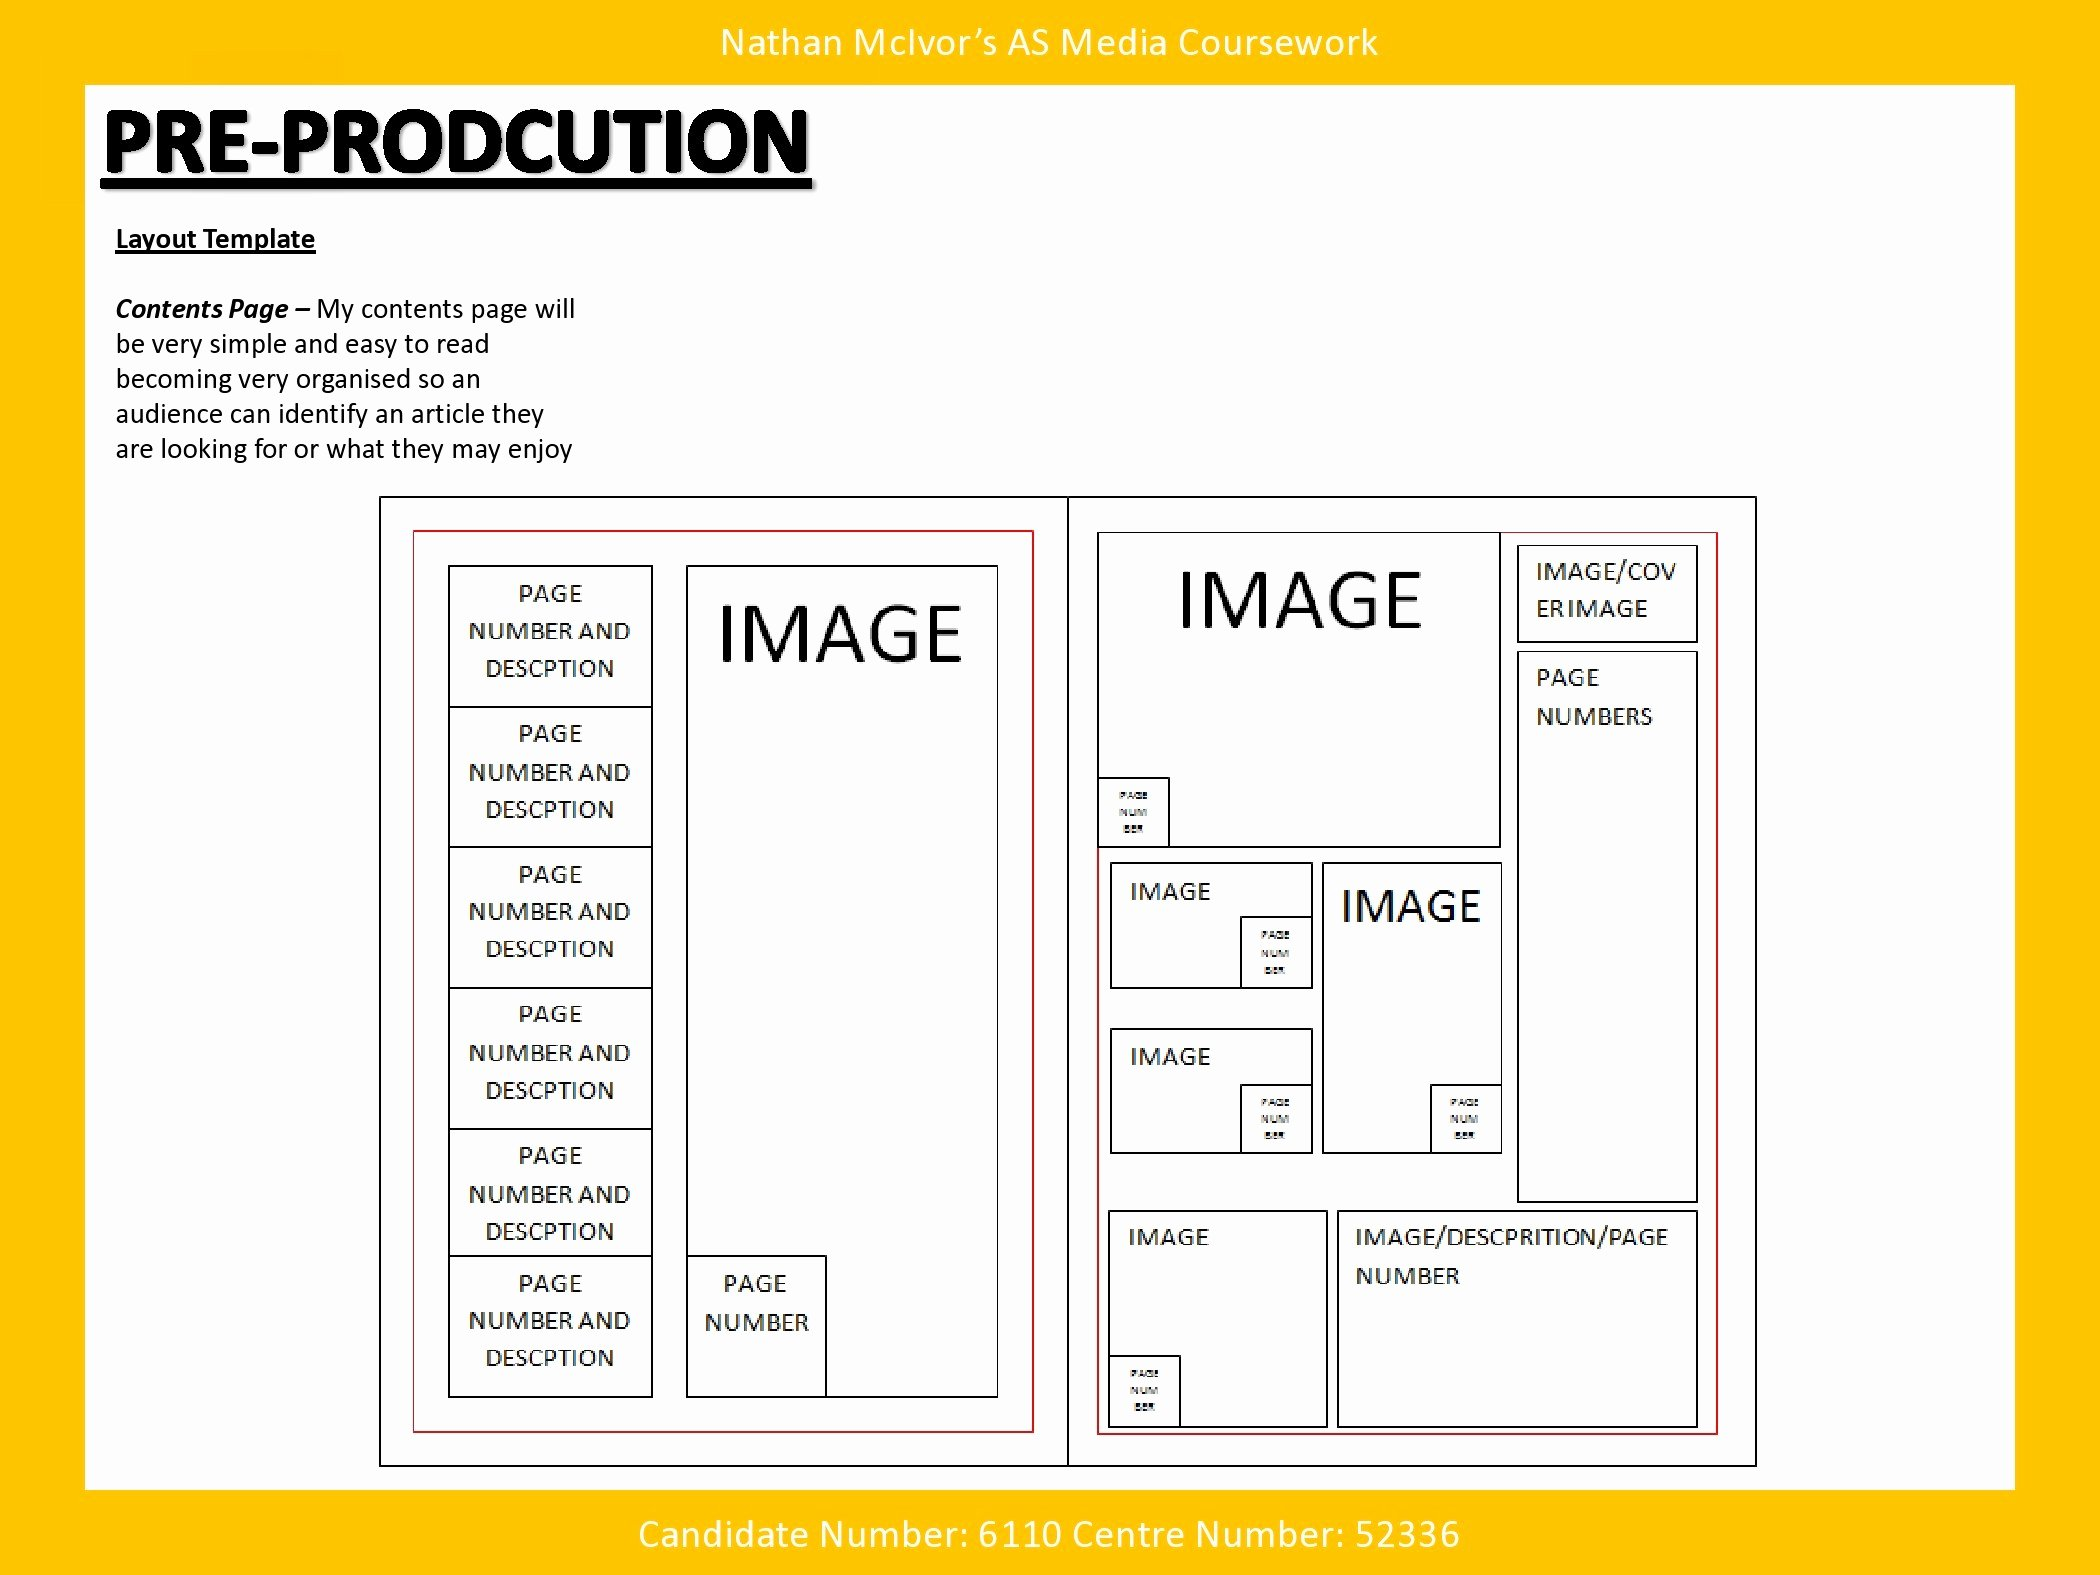 Playbill Template Free New Playbill Template In Microsoft Word Pdfeports585 Web